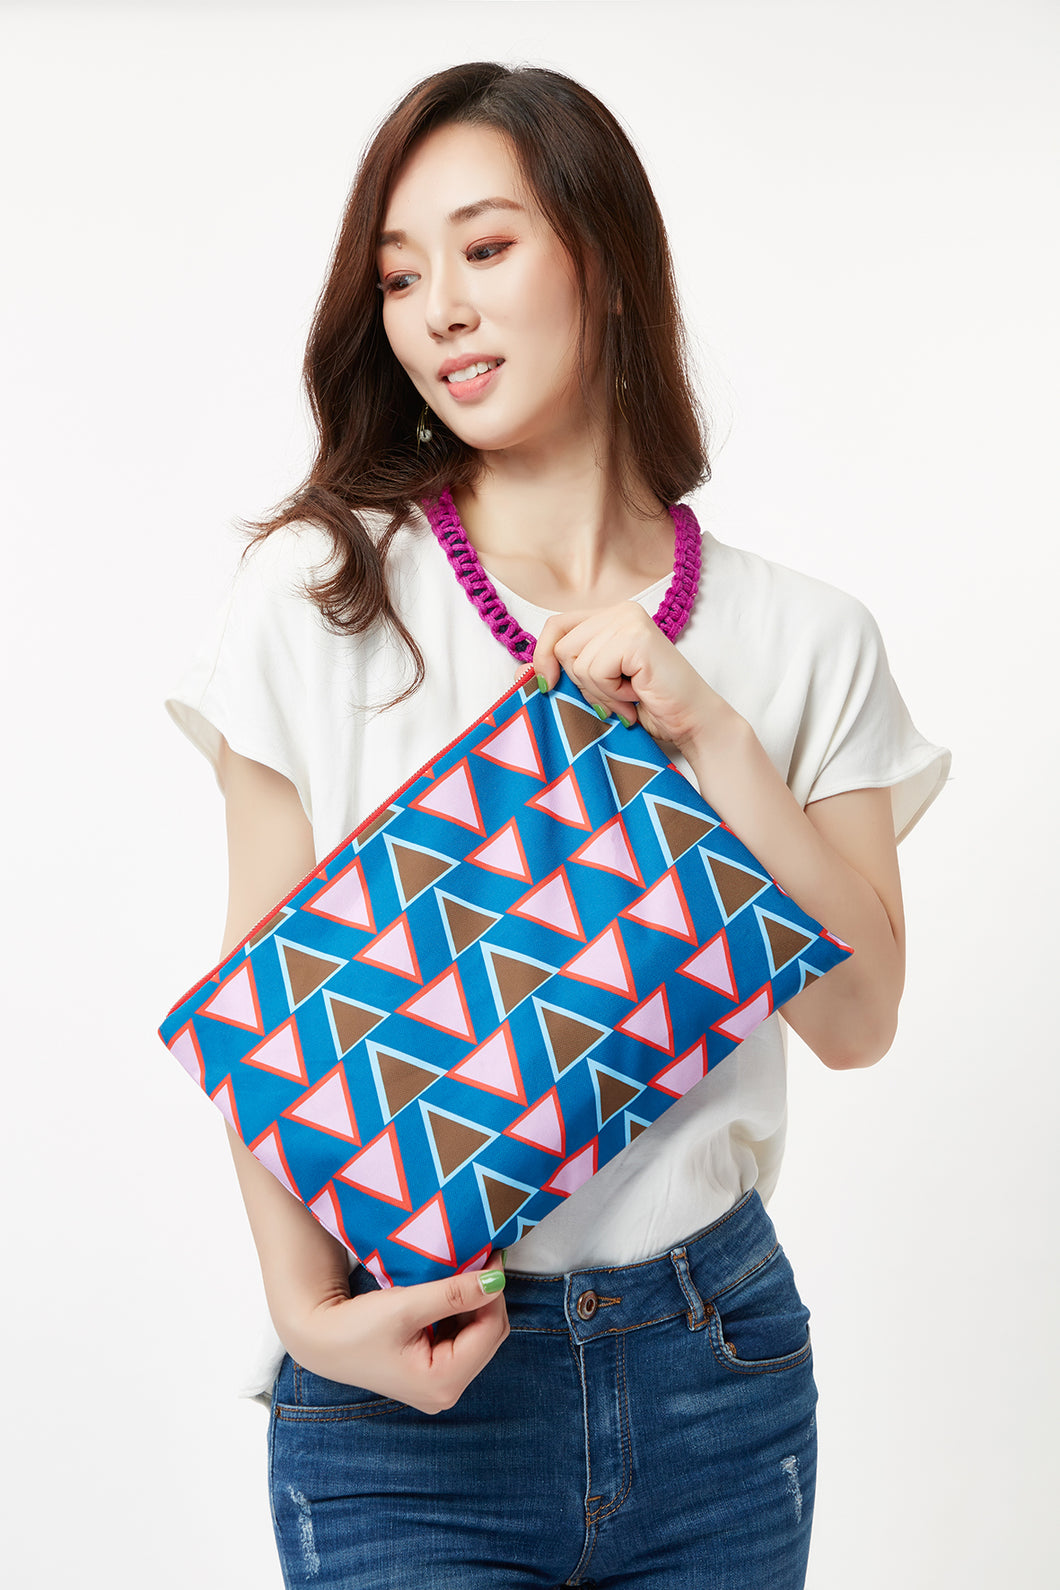 Stacked Triangles Nylon Bag cukimber